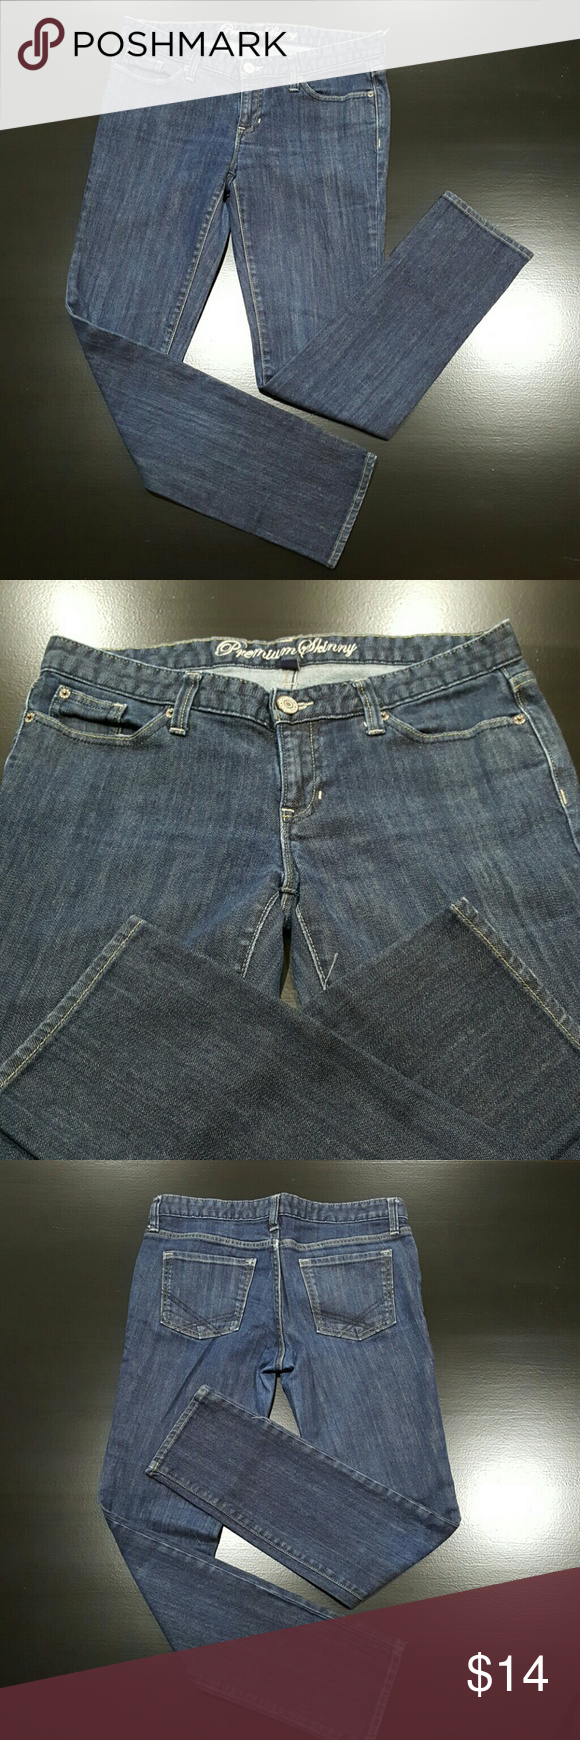 """Gap Jeans Premium Skinny dark wash denim. GAP JEANS Premium Skinny size 8r Excellent pre-owned condition! Measurements across the front while lying flat: Waist:  17"""", 34"""" doubled Front rise:  7.5"""" Inner inseam:  30"""" Outside leg seam: 38"""" Leg opening:  6"""" , 12"""" doubled GAP Jeans Skinny"""